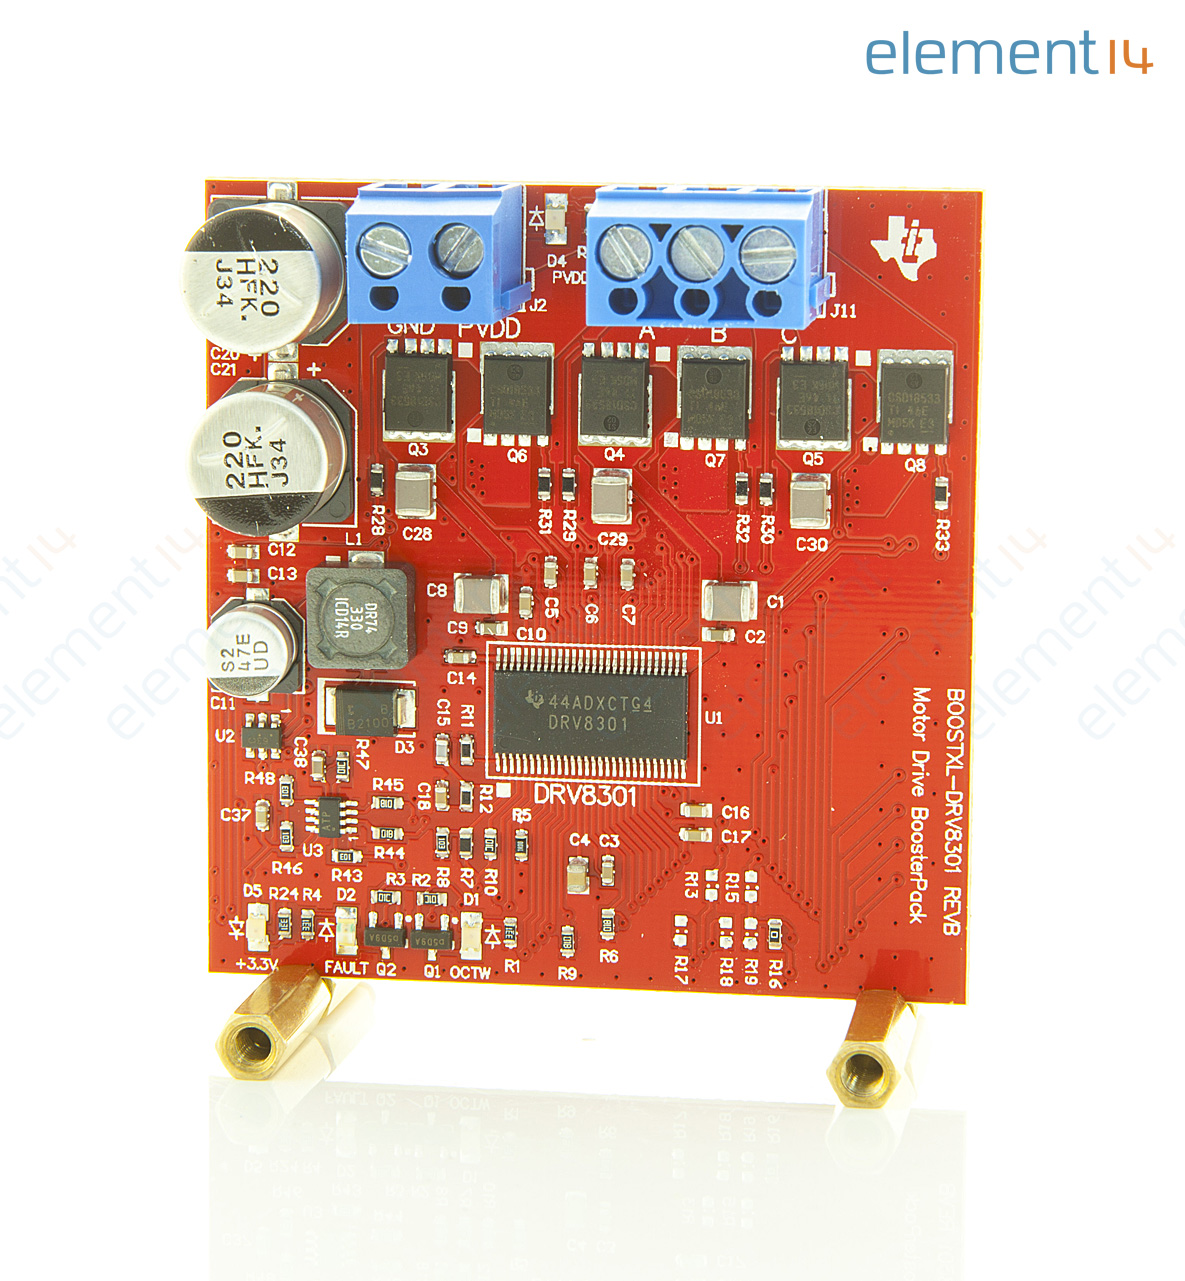 Boostxl Drv8301 Texas Instruments Evaluation Board